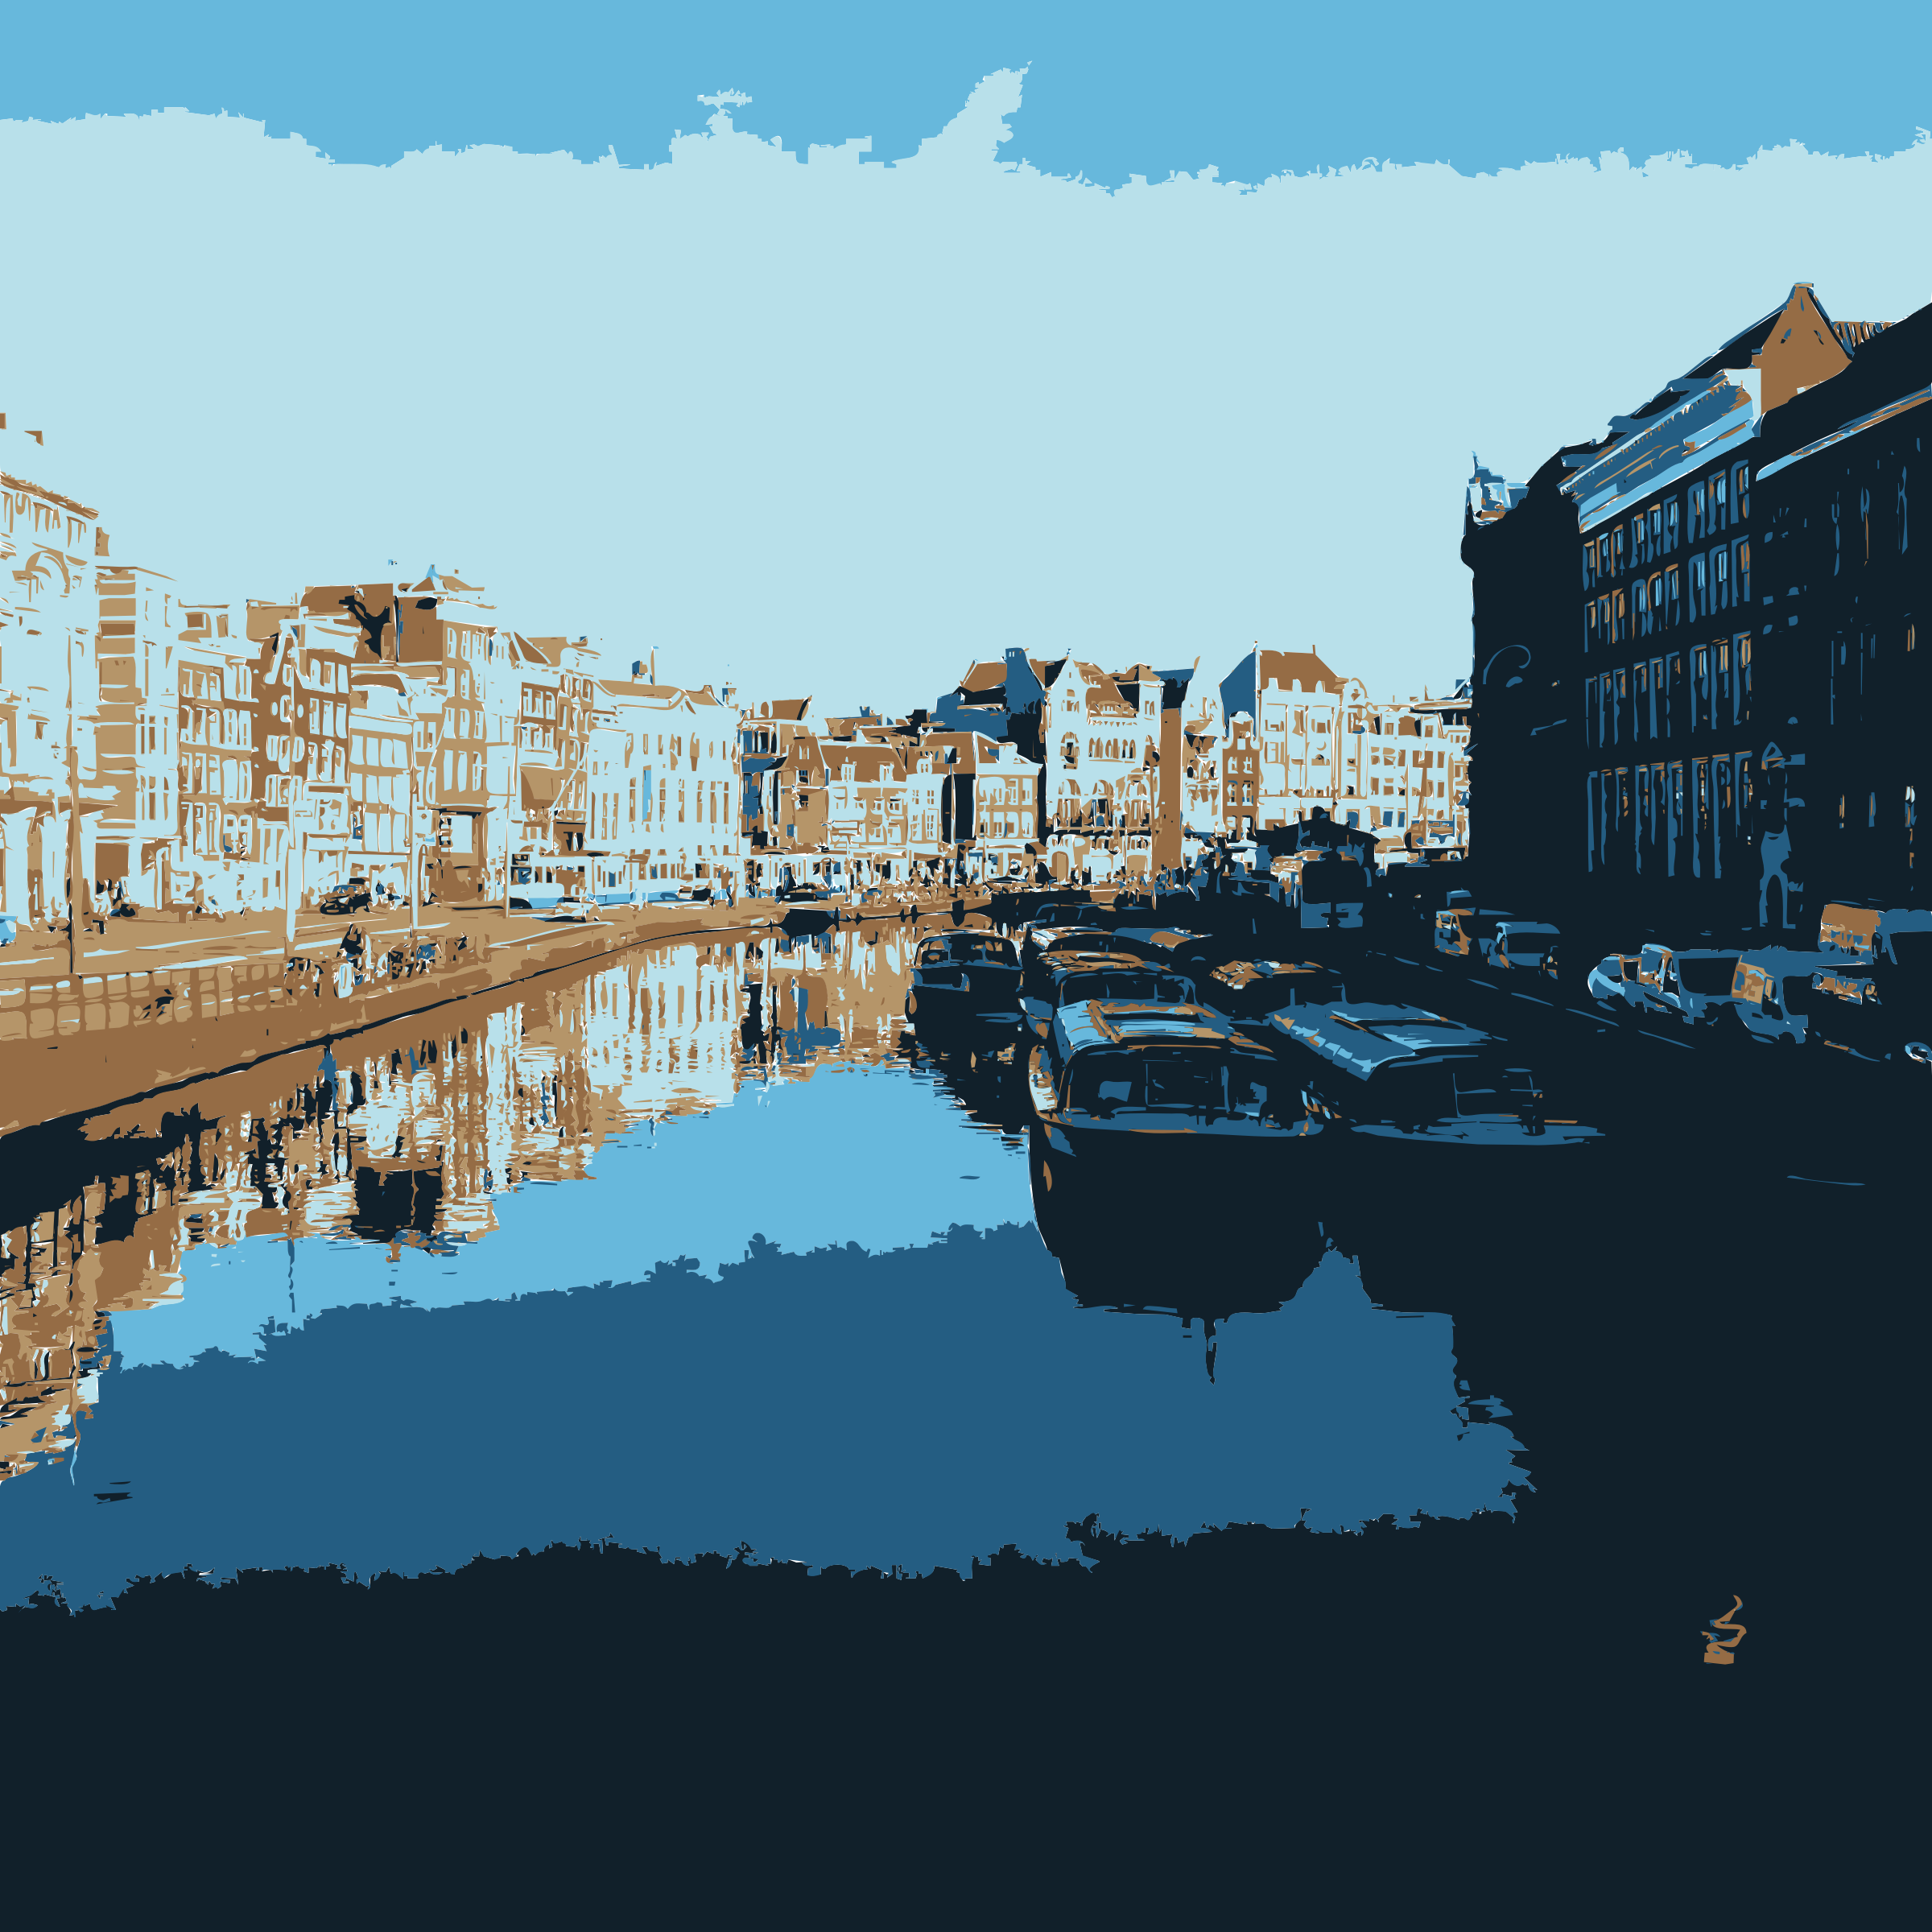 Amsterdam waterway by jonphillips